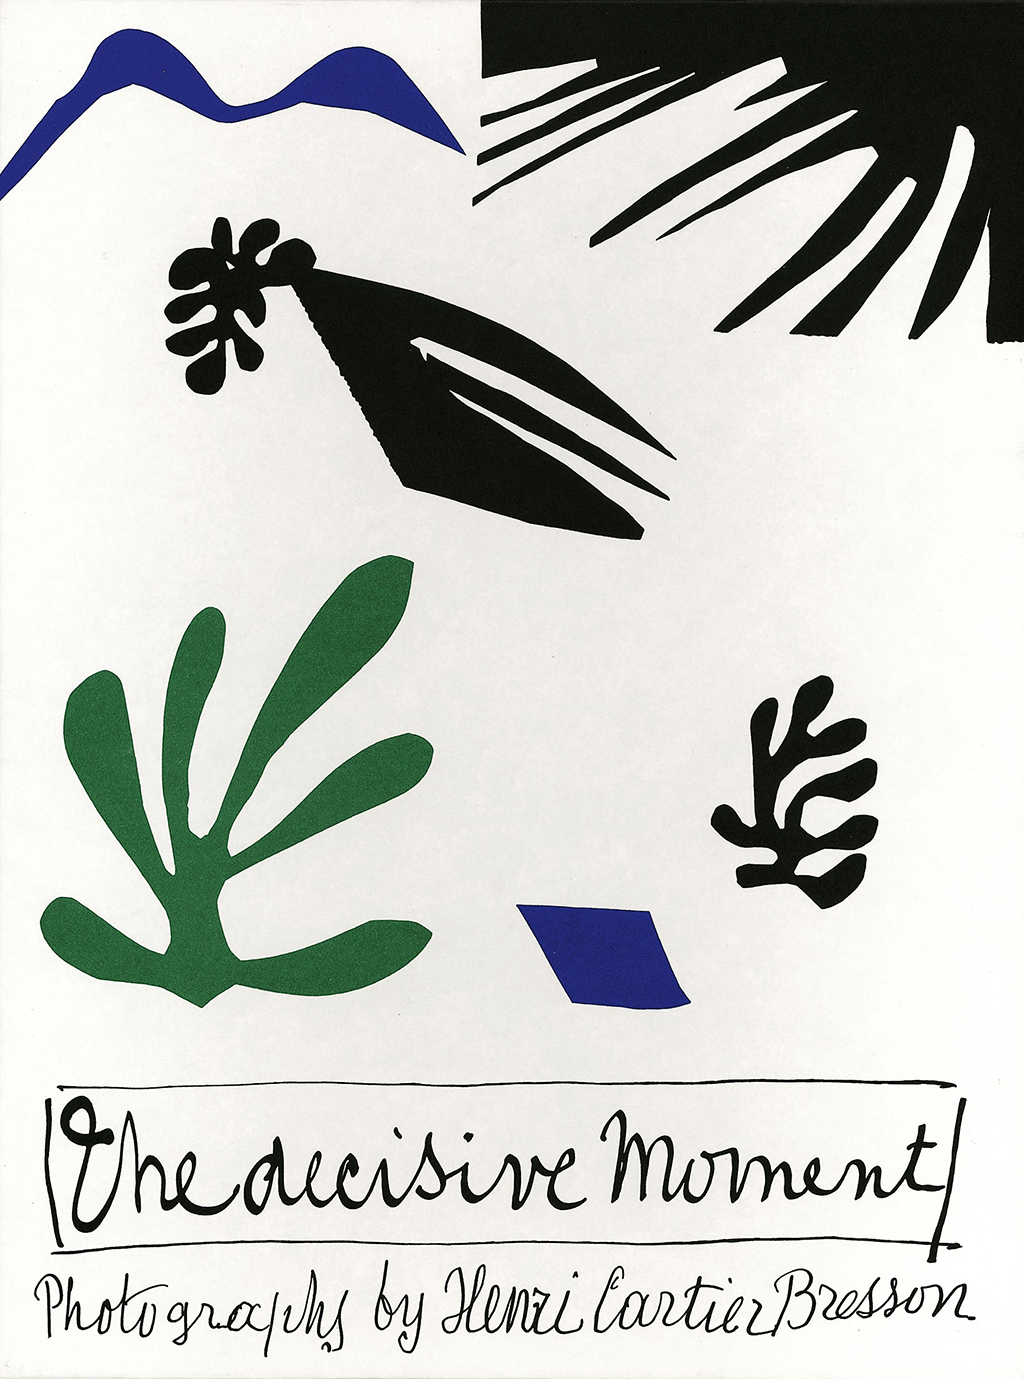 The Decisive Moment by Henri Cartier-Bresson is another wellknown and popular black-and-white art photography book.